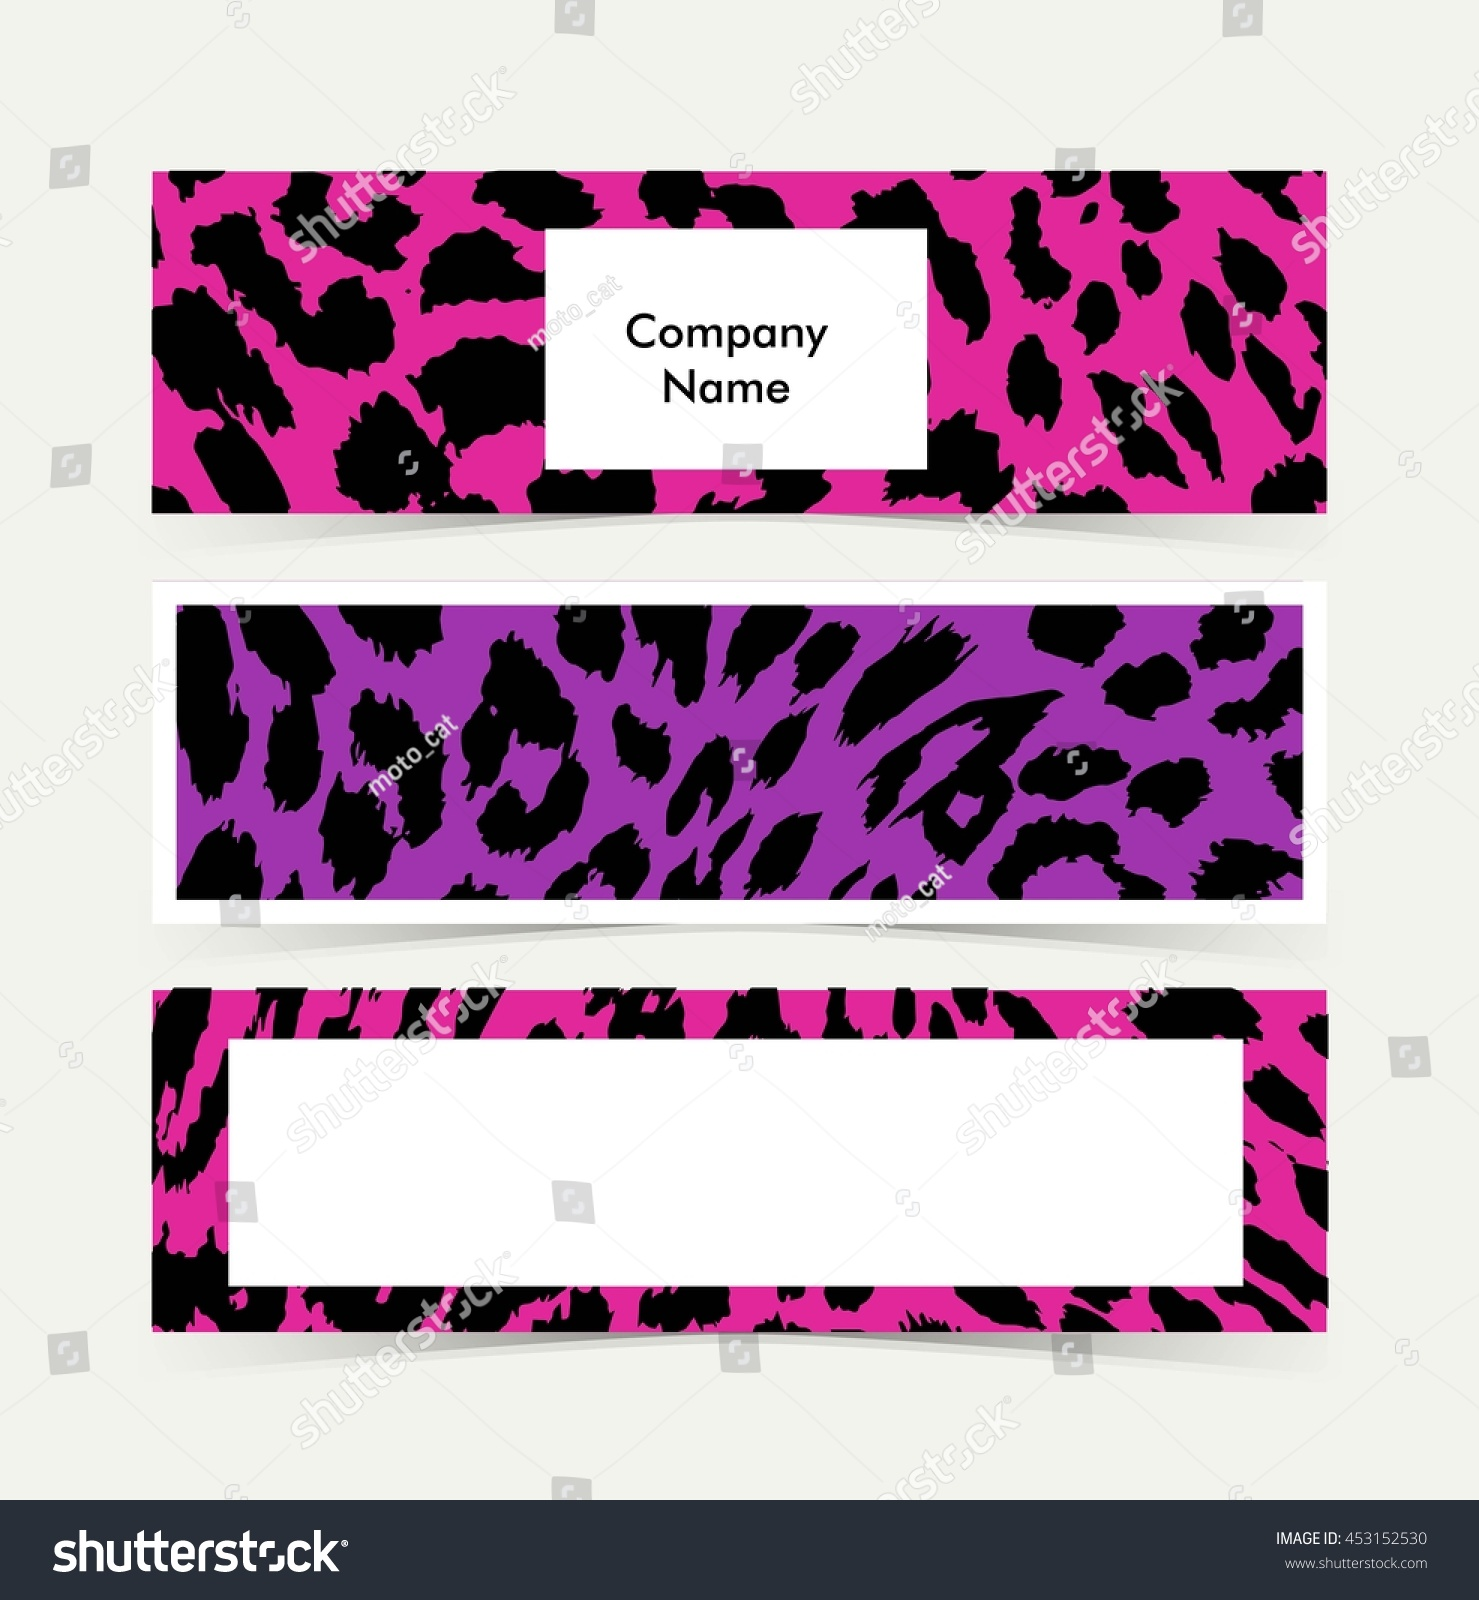 Animal Print Business Cards Image collections - Free Business Cards